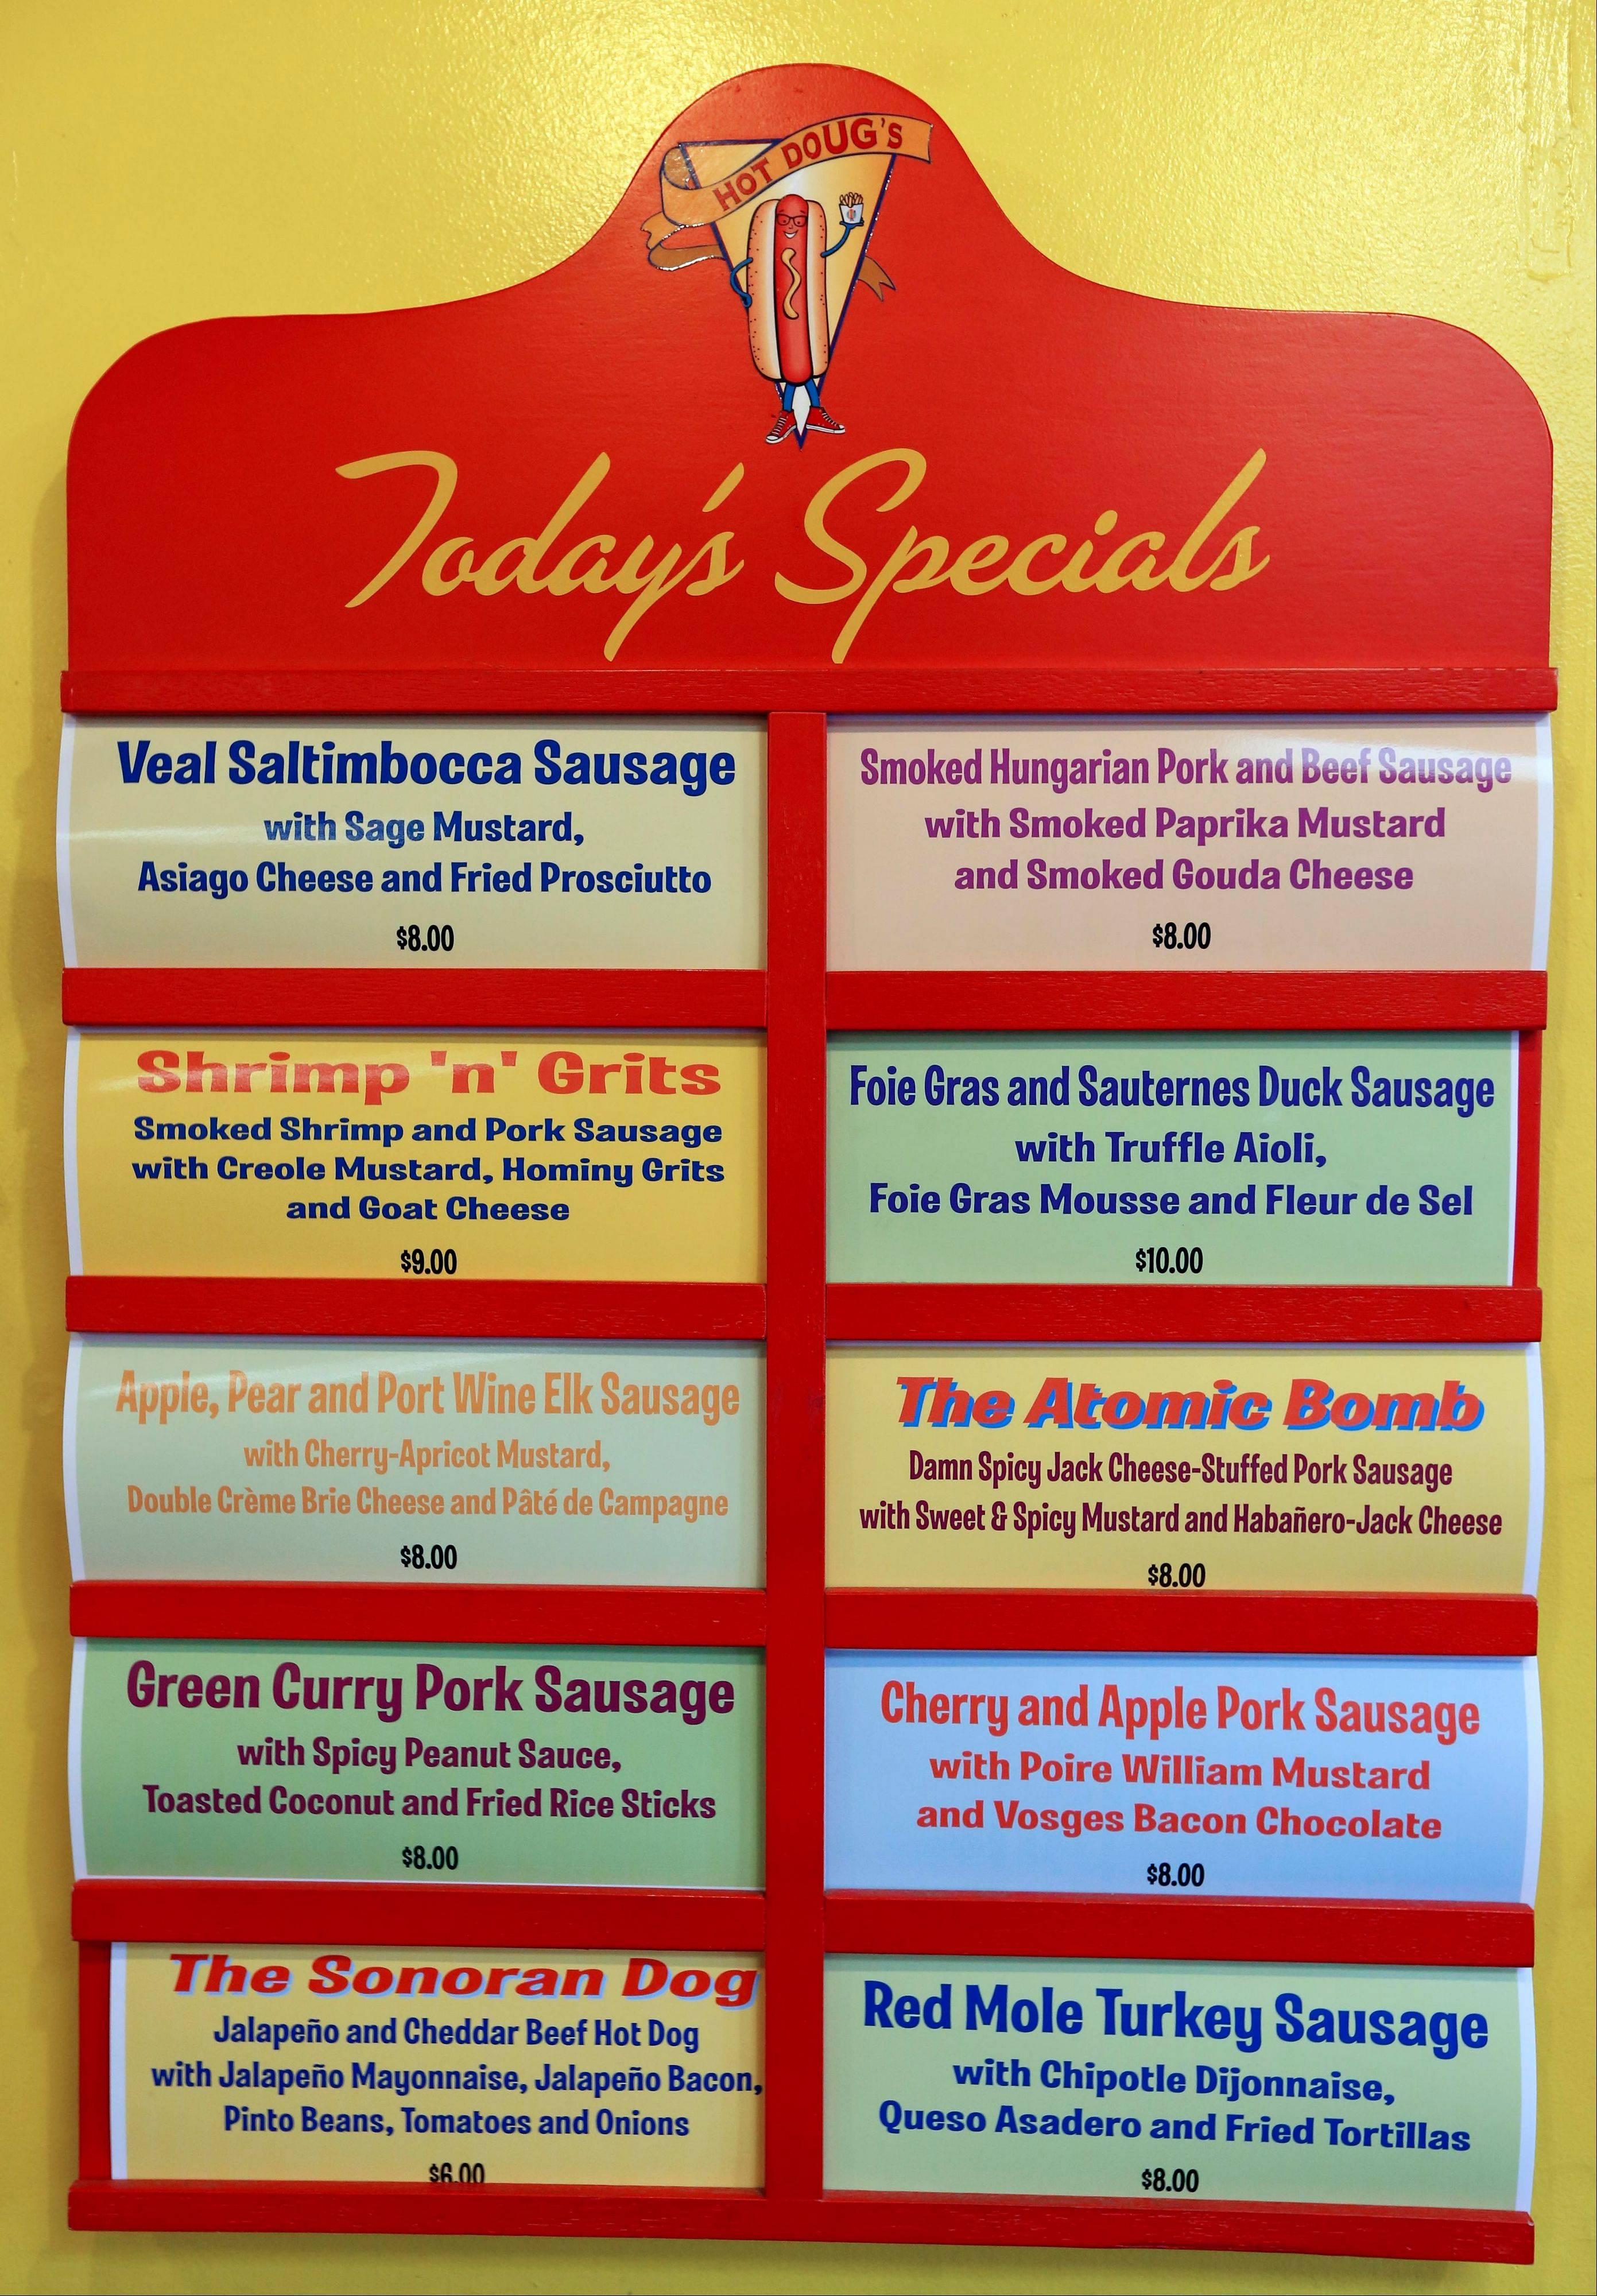 A specials menu adorning the wall at Hot Doug's offers gourmet sausages like Green Curry Pork Sausage and more.